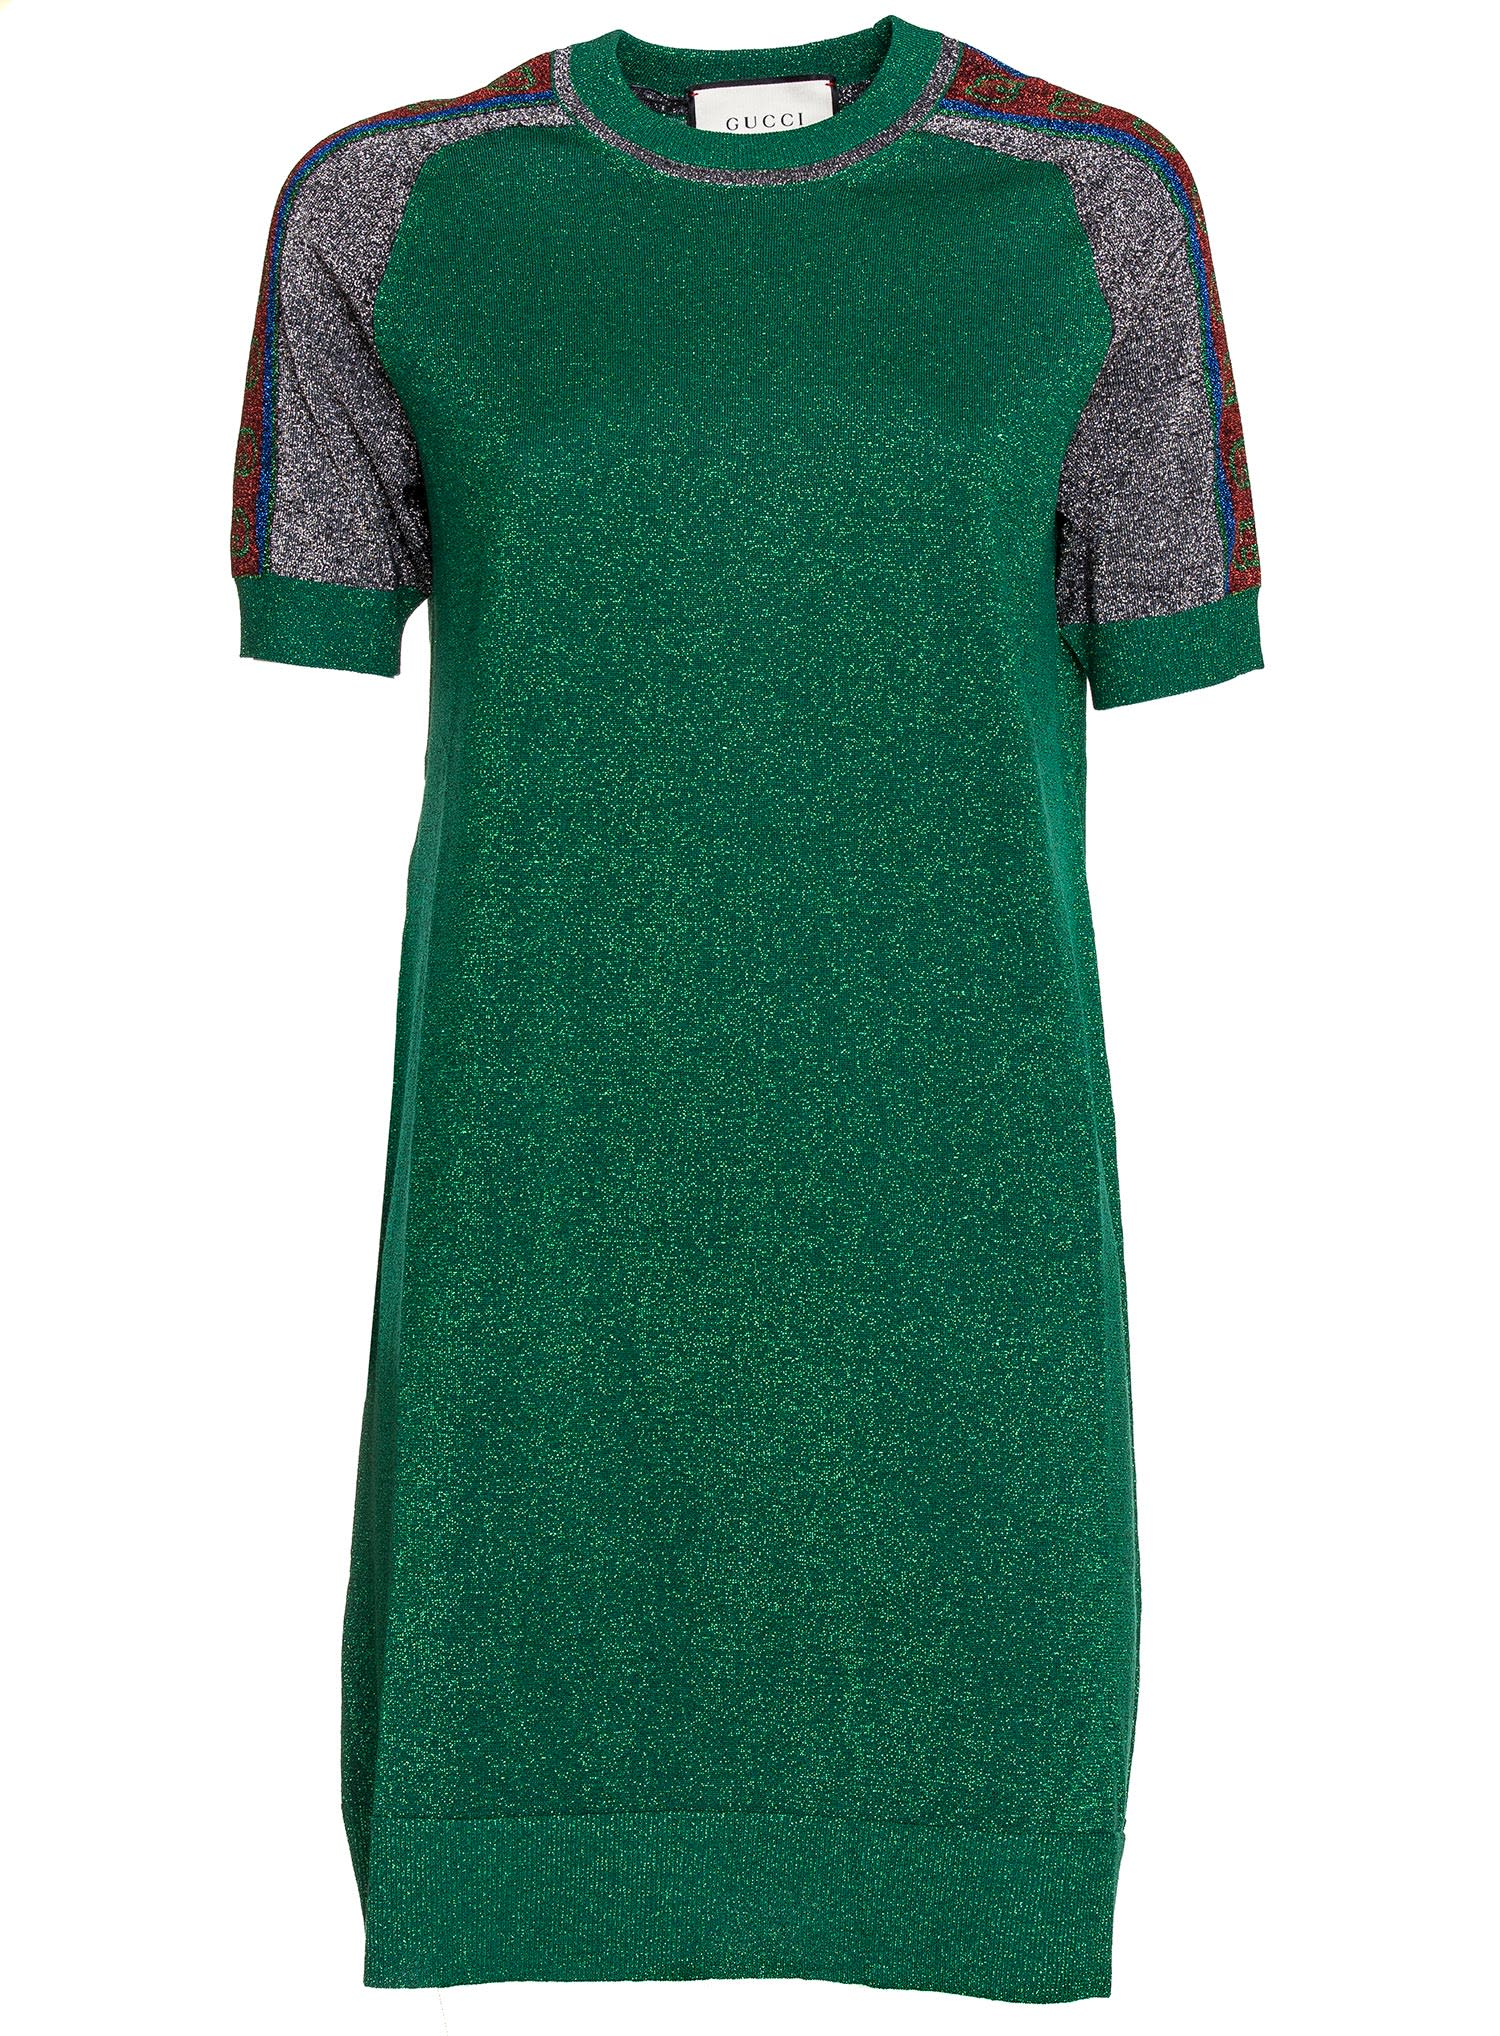 Gucci Tunic Dress In Lurex